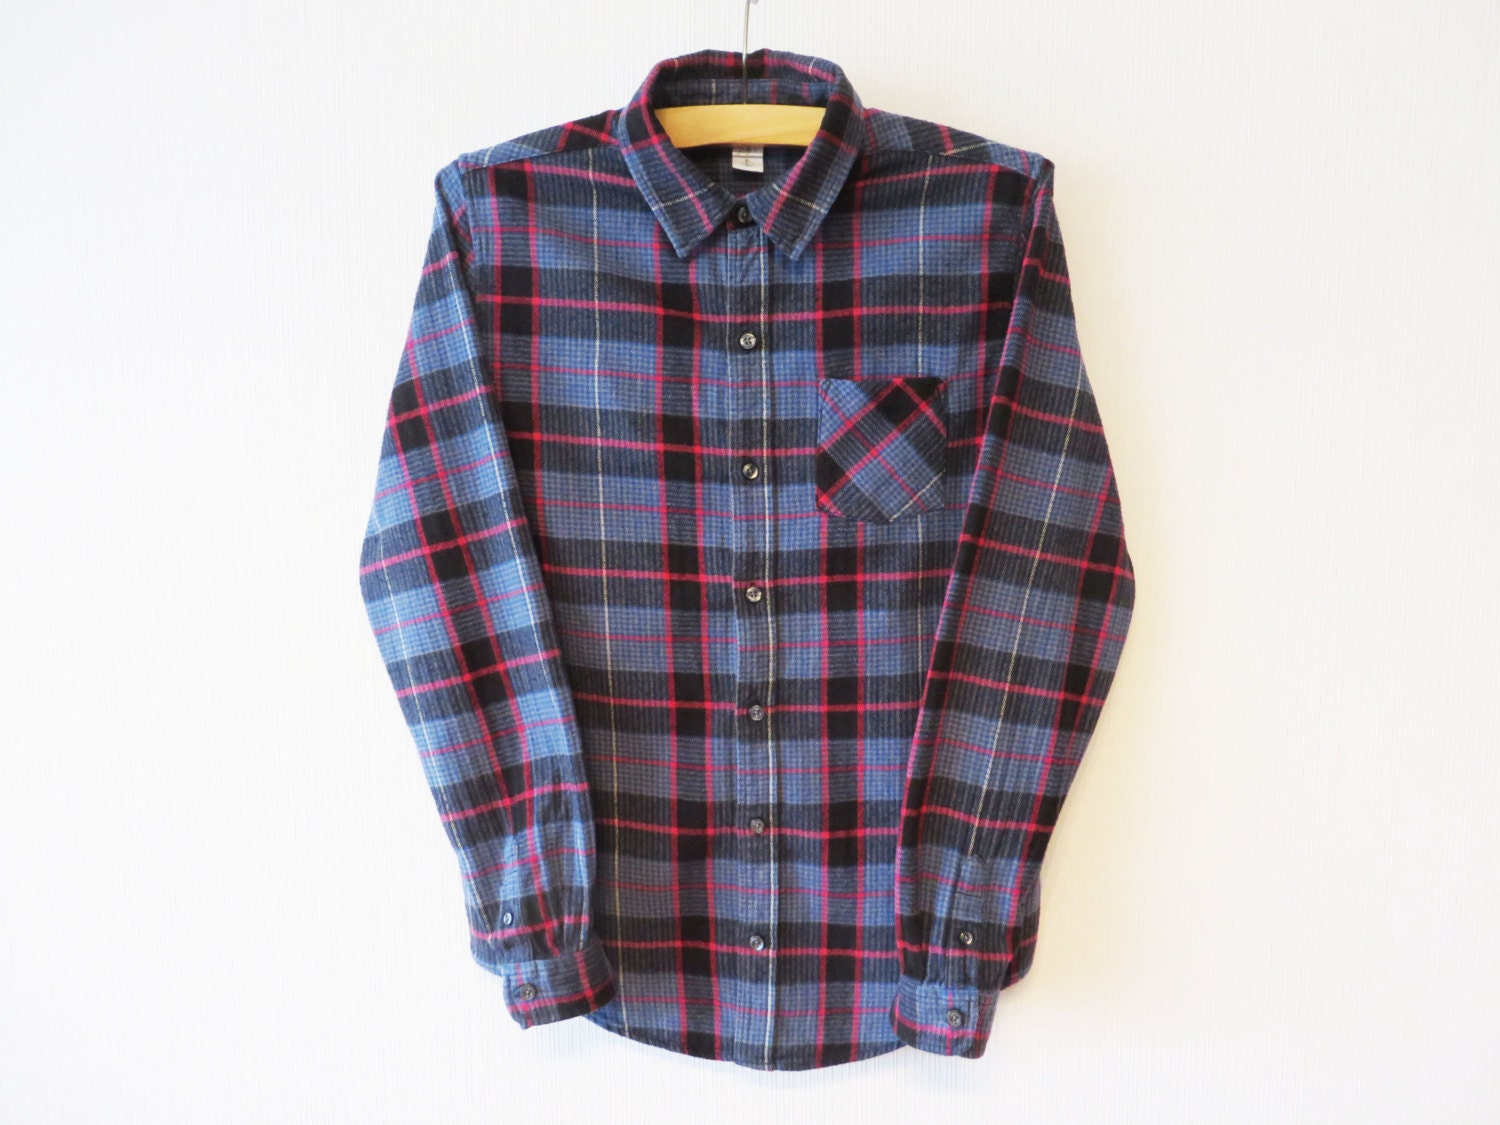 See all results for mens red flannel shirt. Top Rated from Our Brands See more. Quality Durables Co. Our Brand. The look of a rugged plaid flannel shirt with the warmth and comfort MCEDAR Men's Plaid Flannel Shirts-Long Sleeve Casual Button Down Slim Fit Outfit for Camp Hanging Out or Work.